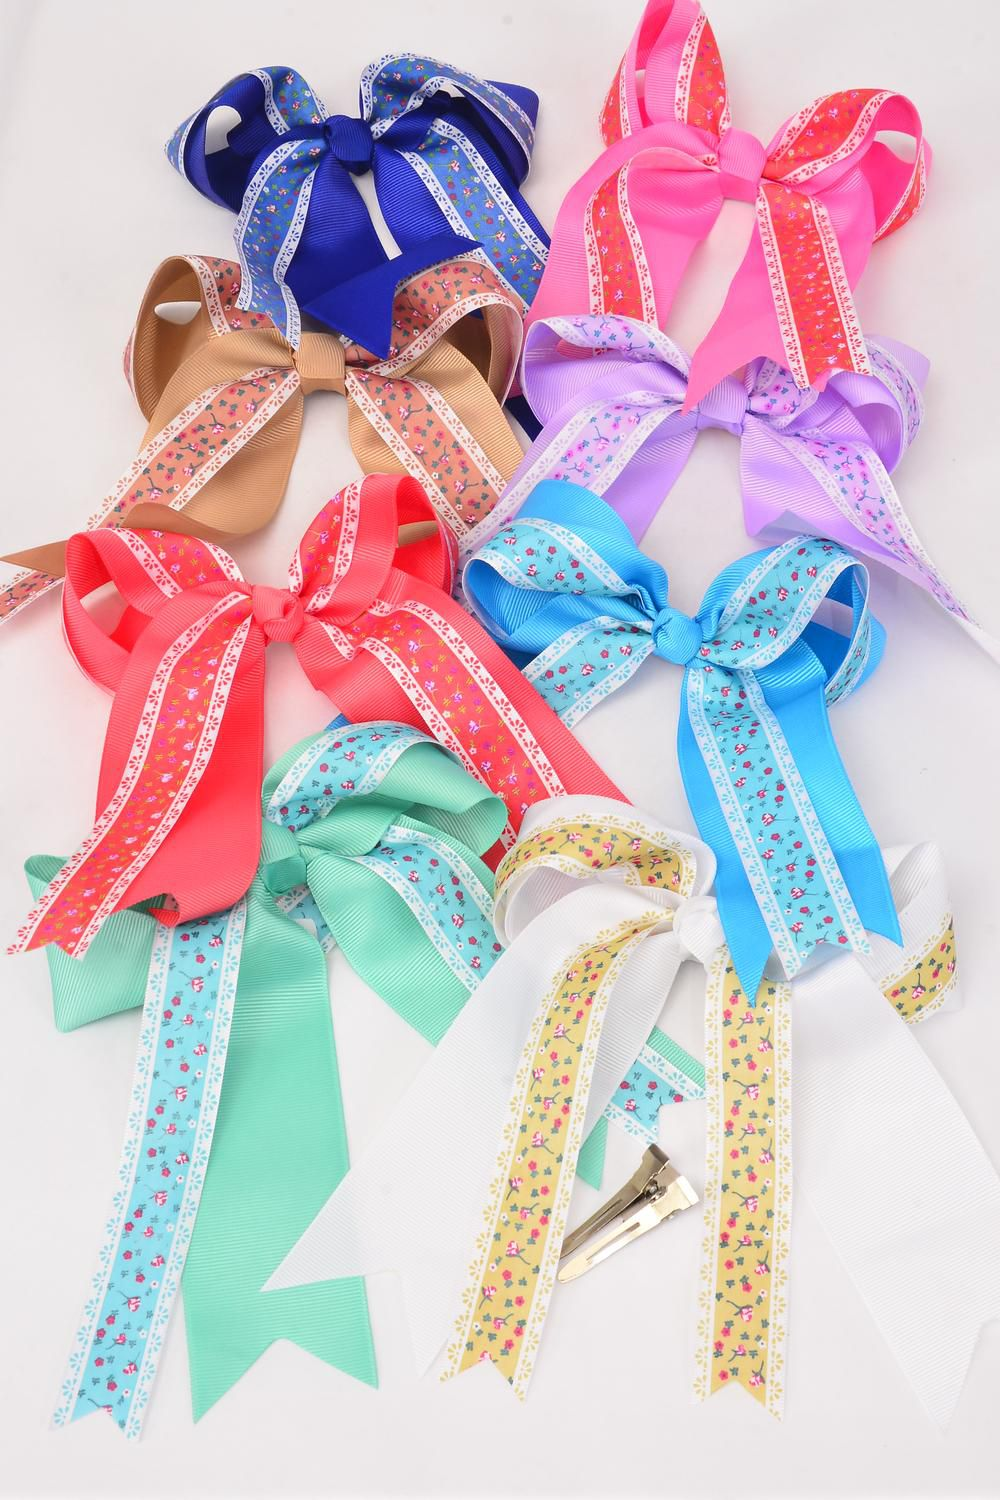 "Hair Bow Long Tail Double Layer Country Floral Grosgrain Bowtie/DZ **Multi** Alligator Clip,Bow-6.5""x 6"",2 Royal Blue,2 Purple,2 Pink,2 White,1 Khaki,1 Blue,1 Coral,1 Mint Green,8 Color Asst,Clip Strip & UPC Code"